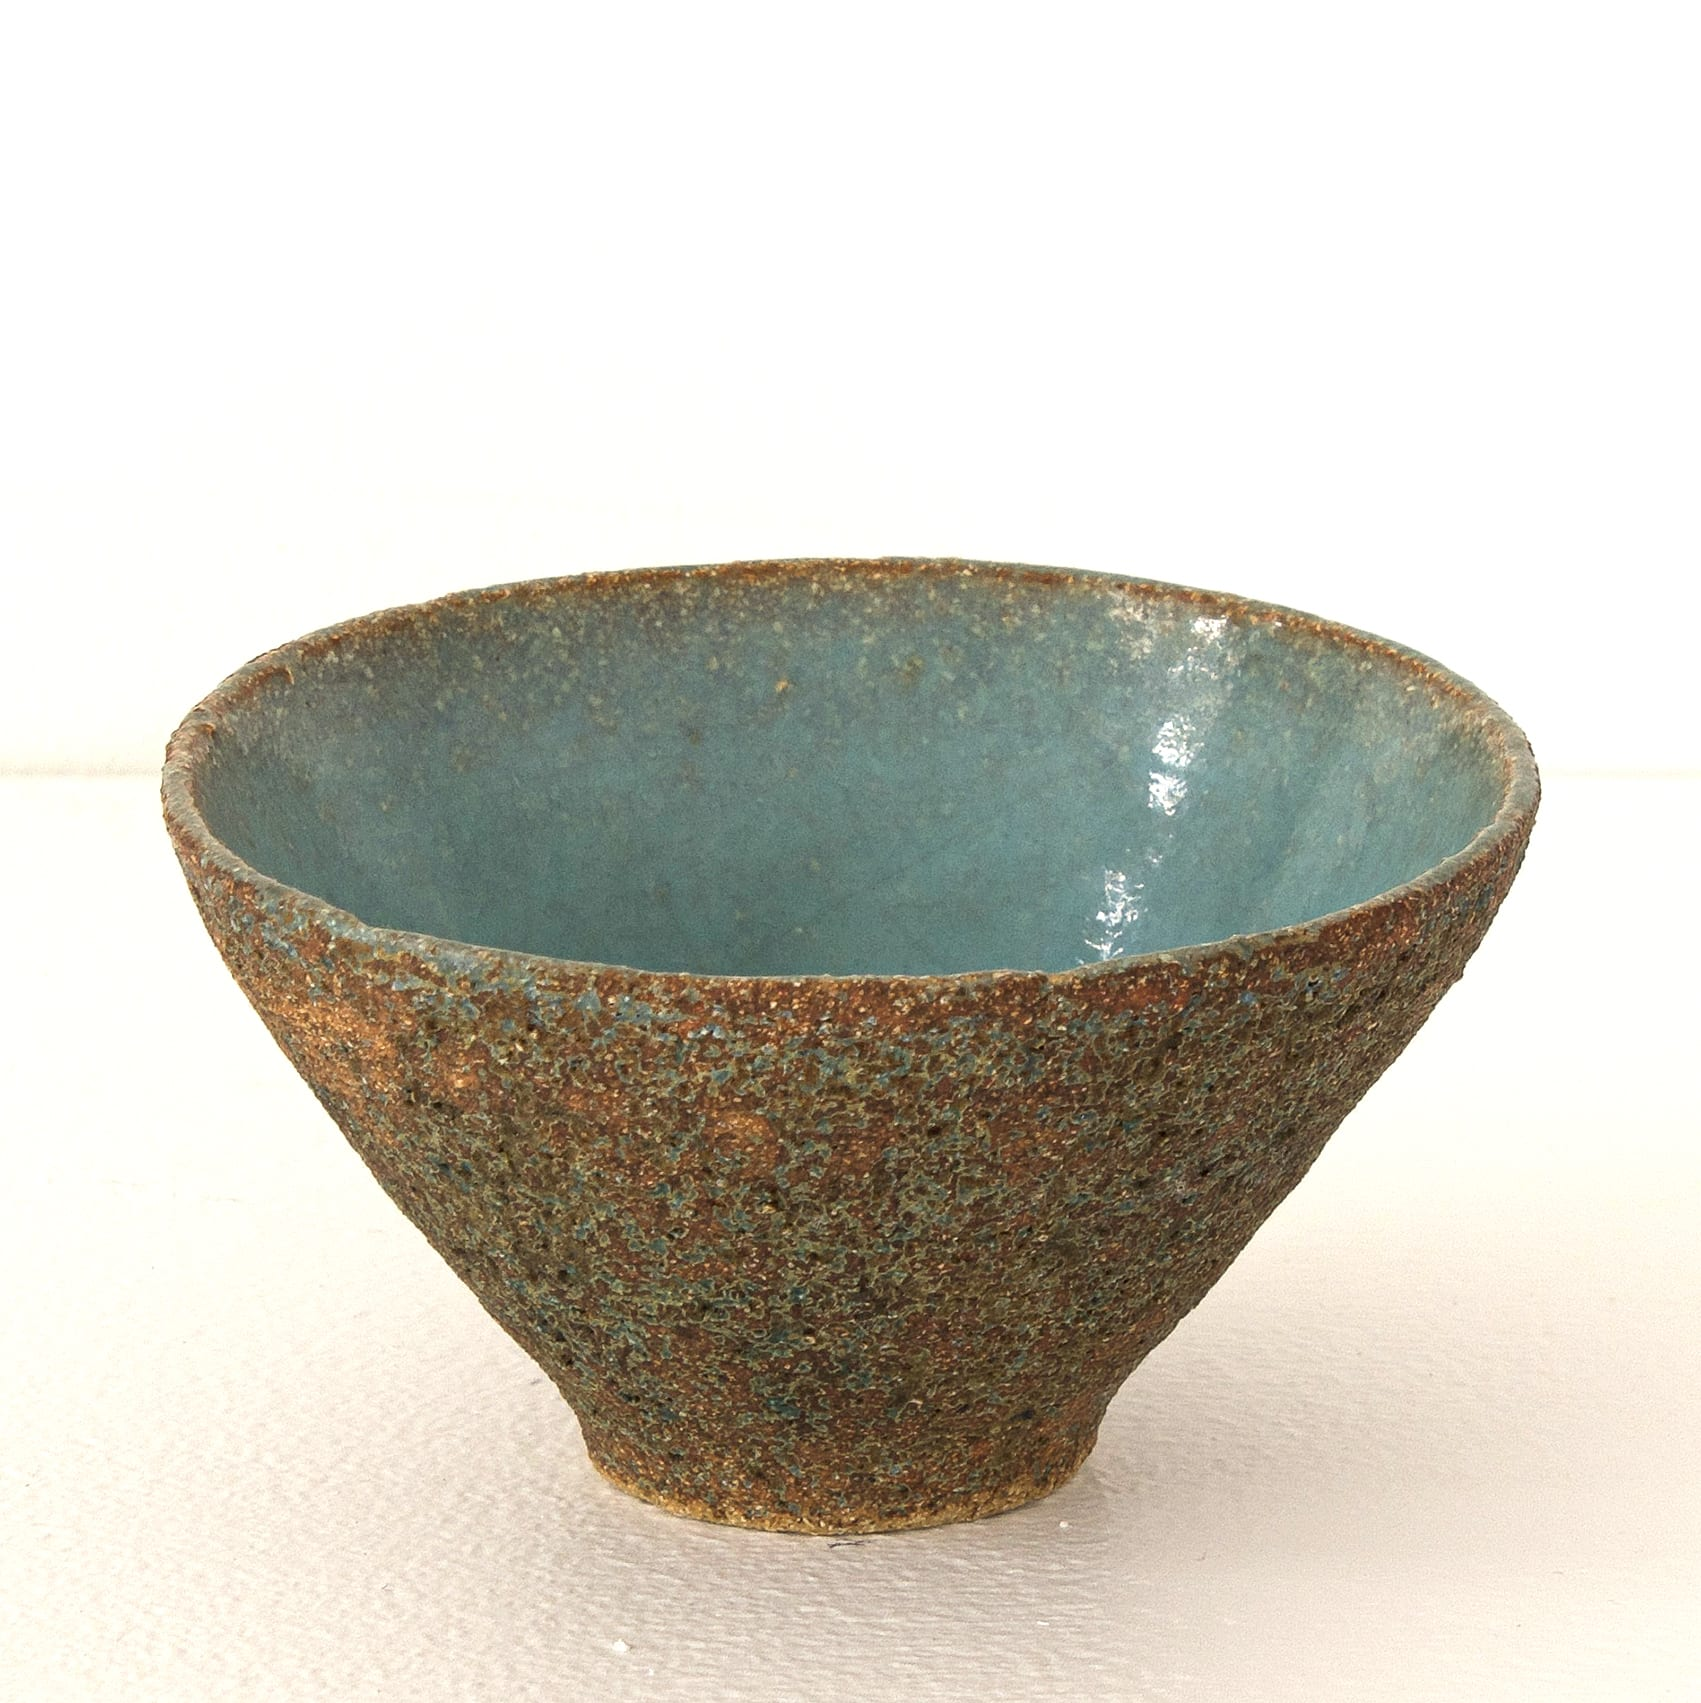 """<span class=""""link fancybox-details-link""""><a href=""""/artists/410-sotis-filippides/works/7701-sotis-filippides-small-bowl-2021/"""">View Detail Page</a></span><div class=""""artist""""><strong>Sotis Filippides</strong></div> <div class=""""title""""><em>Small Bowl</em>, 2021</div> <div class=""""signed_and_dated"""">impressed to the base with the artist's seal mark</div> <div class=""""medium"""">thrown stoneware</div> <div class=""""dimensions"""">h. 6 x dia. 10 cm</div><div class=""""copyright_line"""">Own Art: £5.50 x 10 Months, 0% APR</div>"""